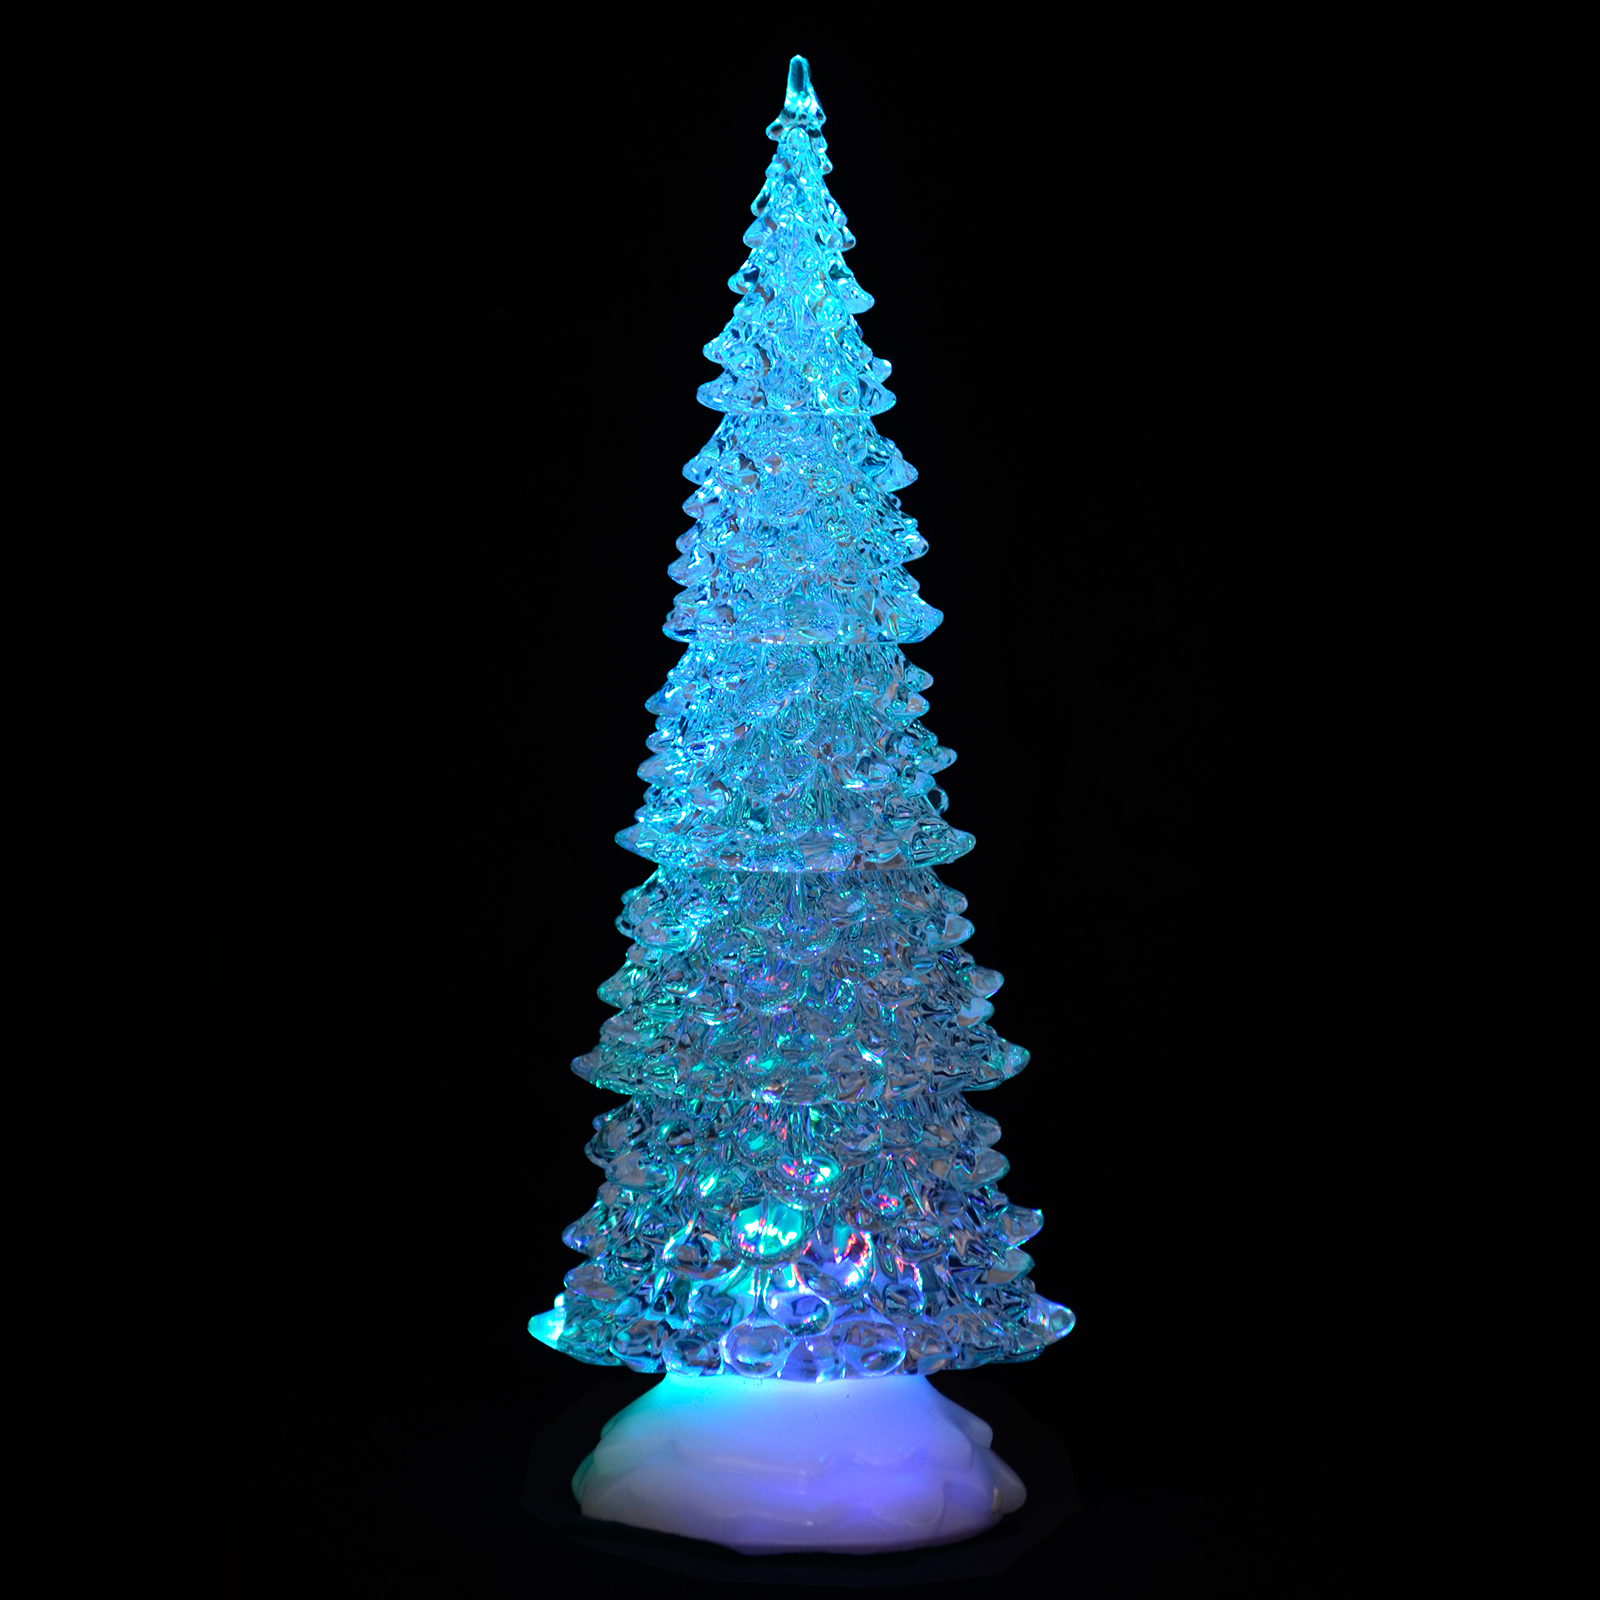 light up led acrylic xmas tree ornament christmas decoration